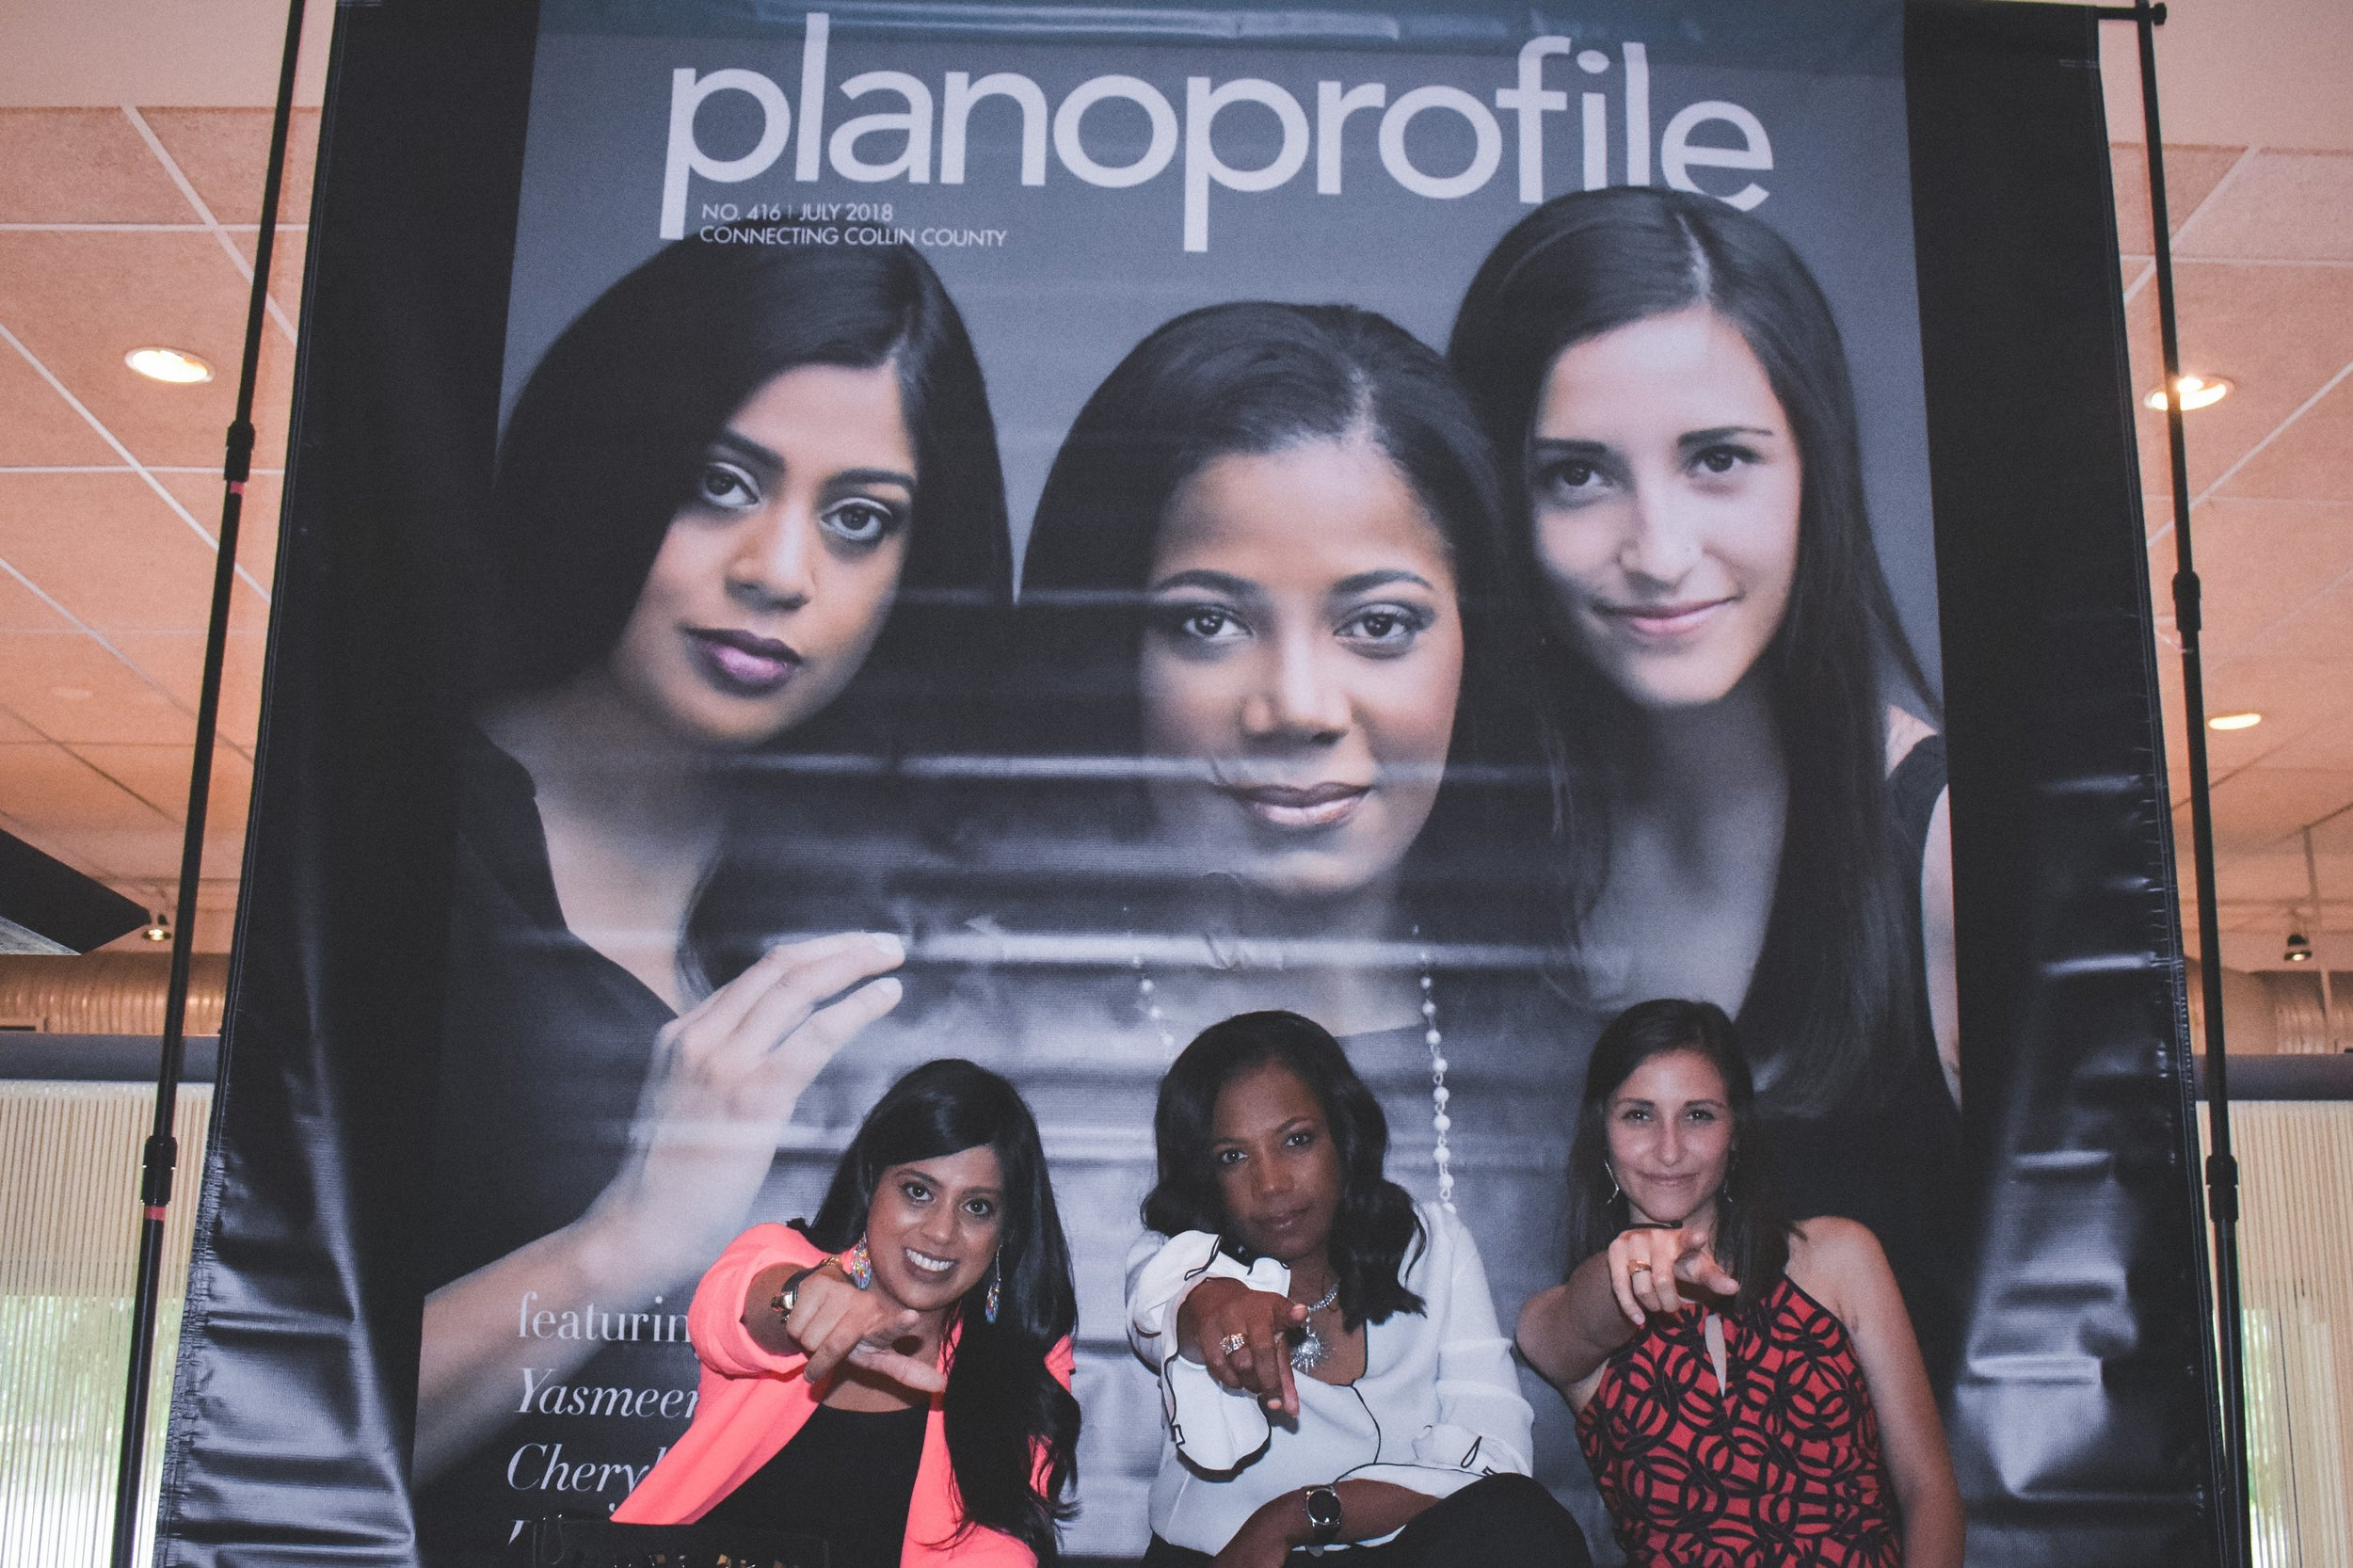 Yasmeen Tadia Events - Plano Profile Cover Party